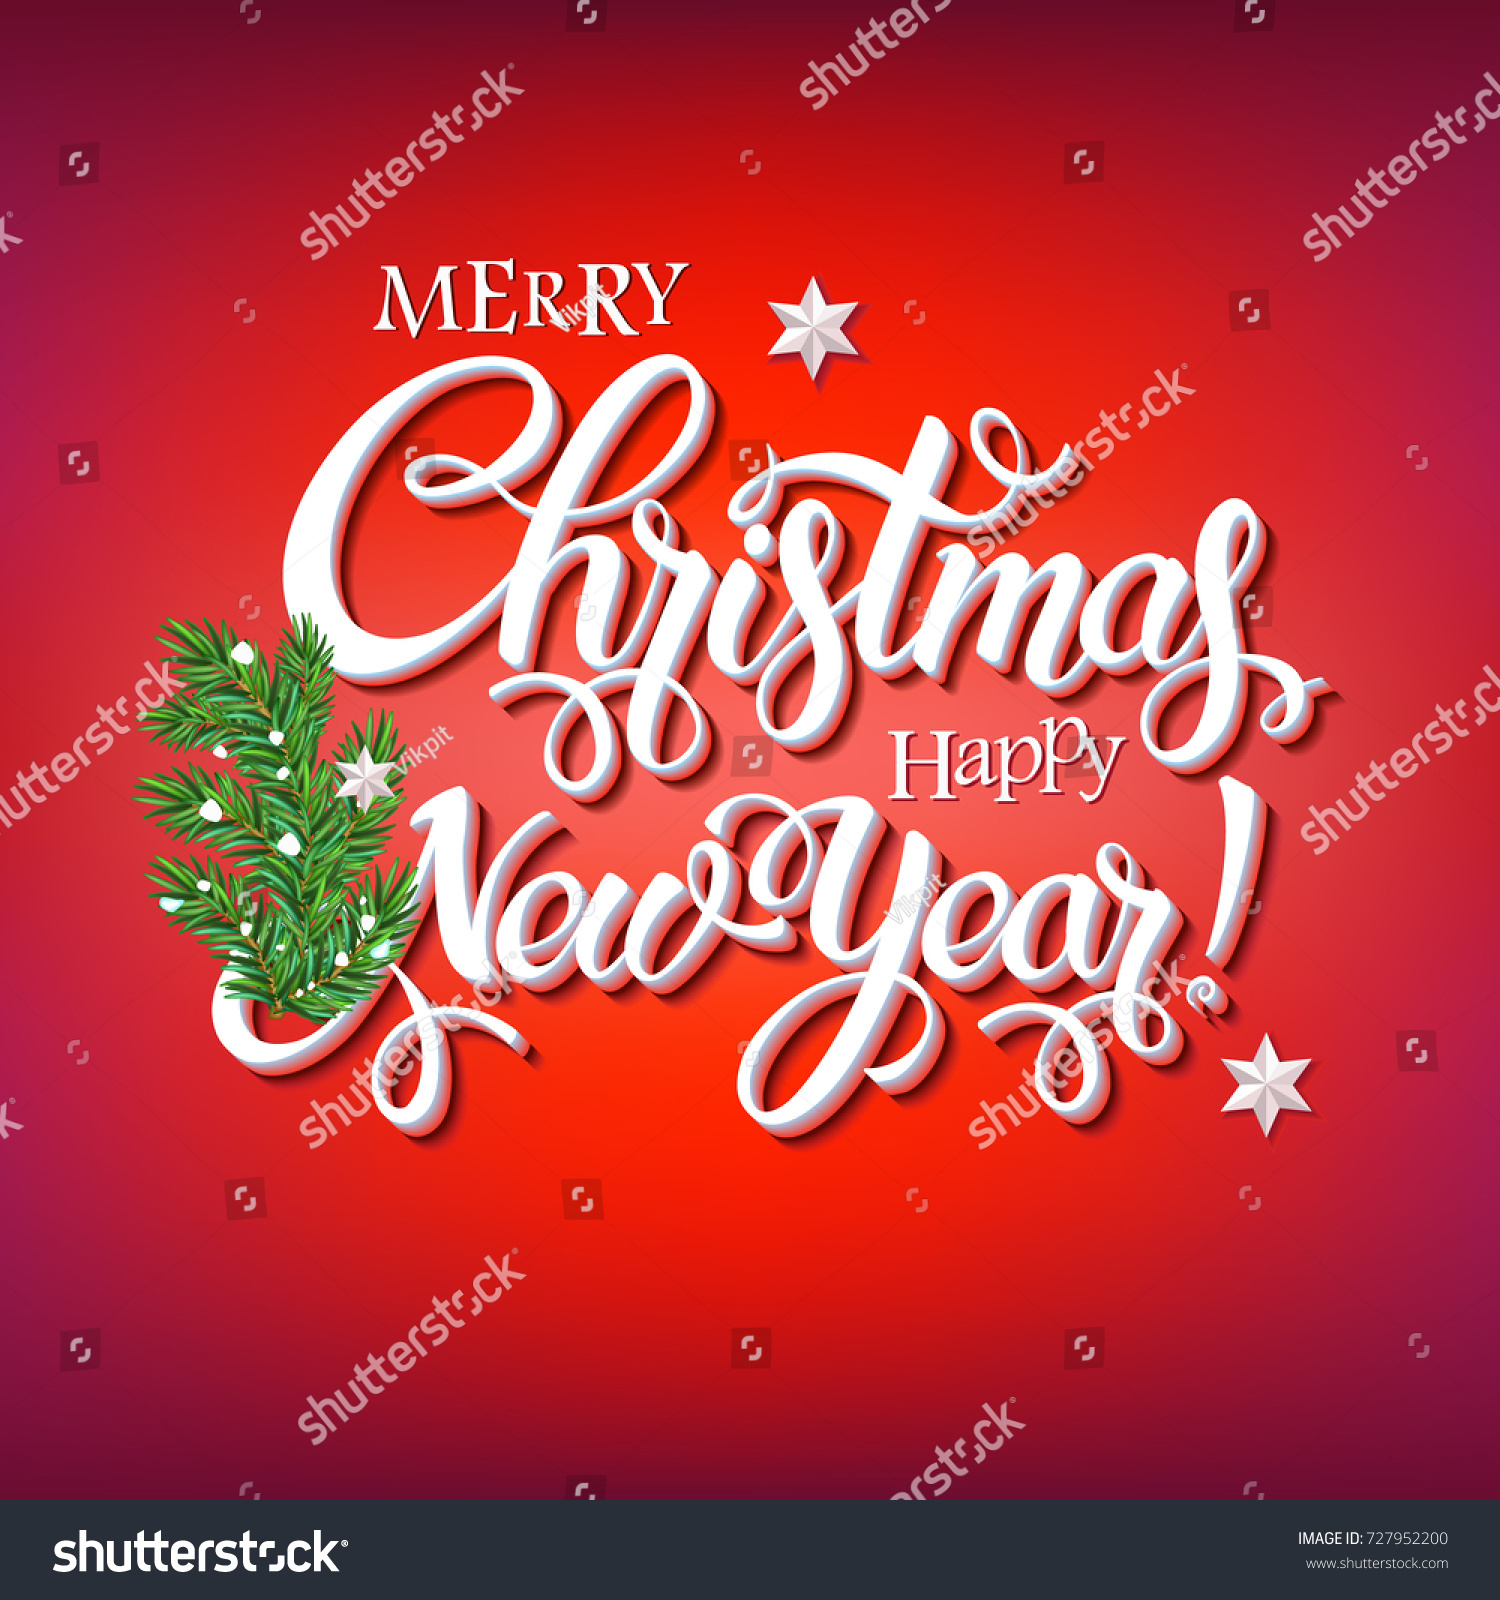 merry christmas and happy new year 2018 sign on red background with a branch of a